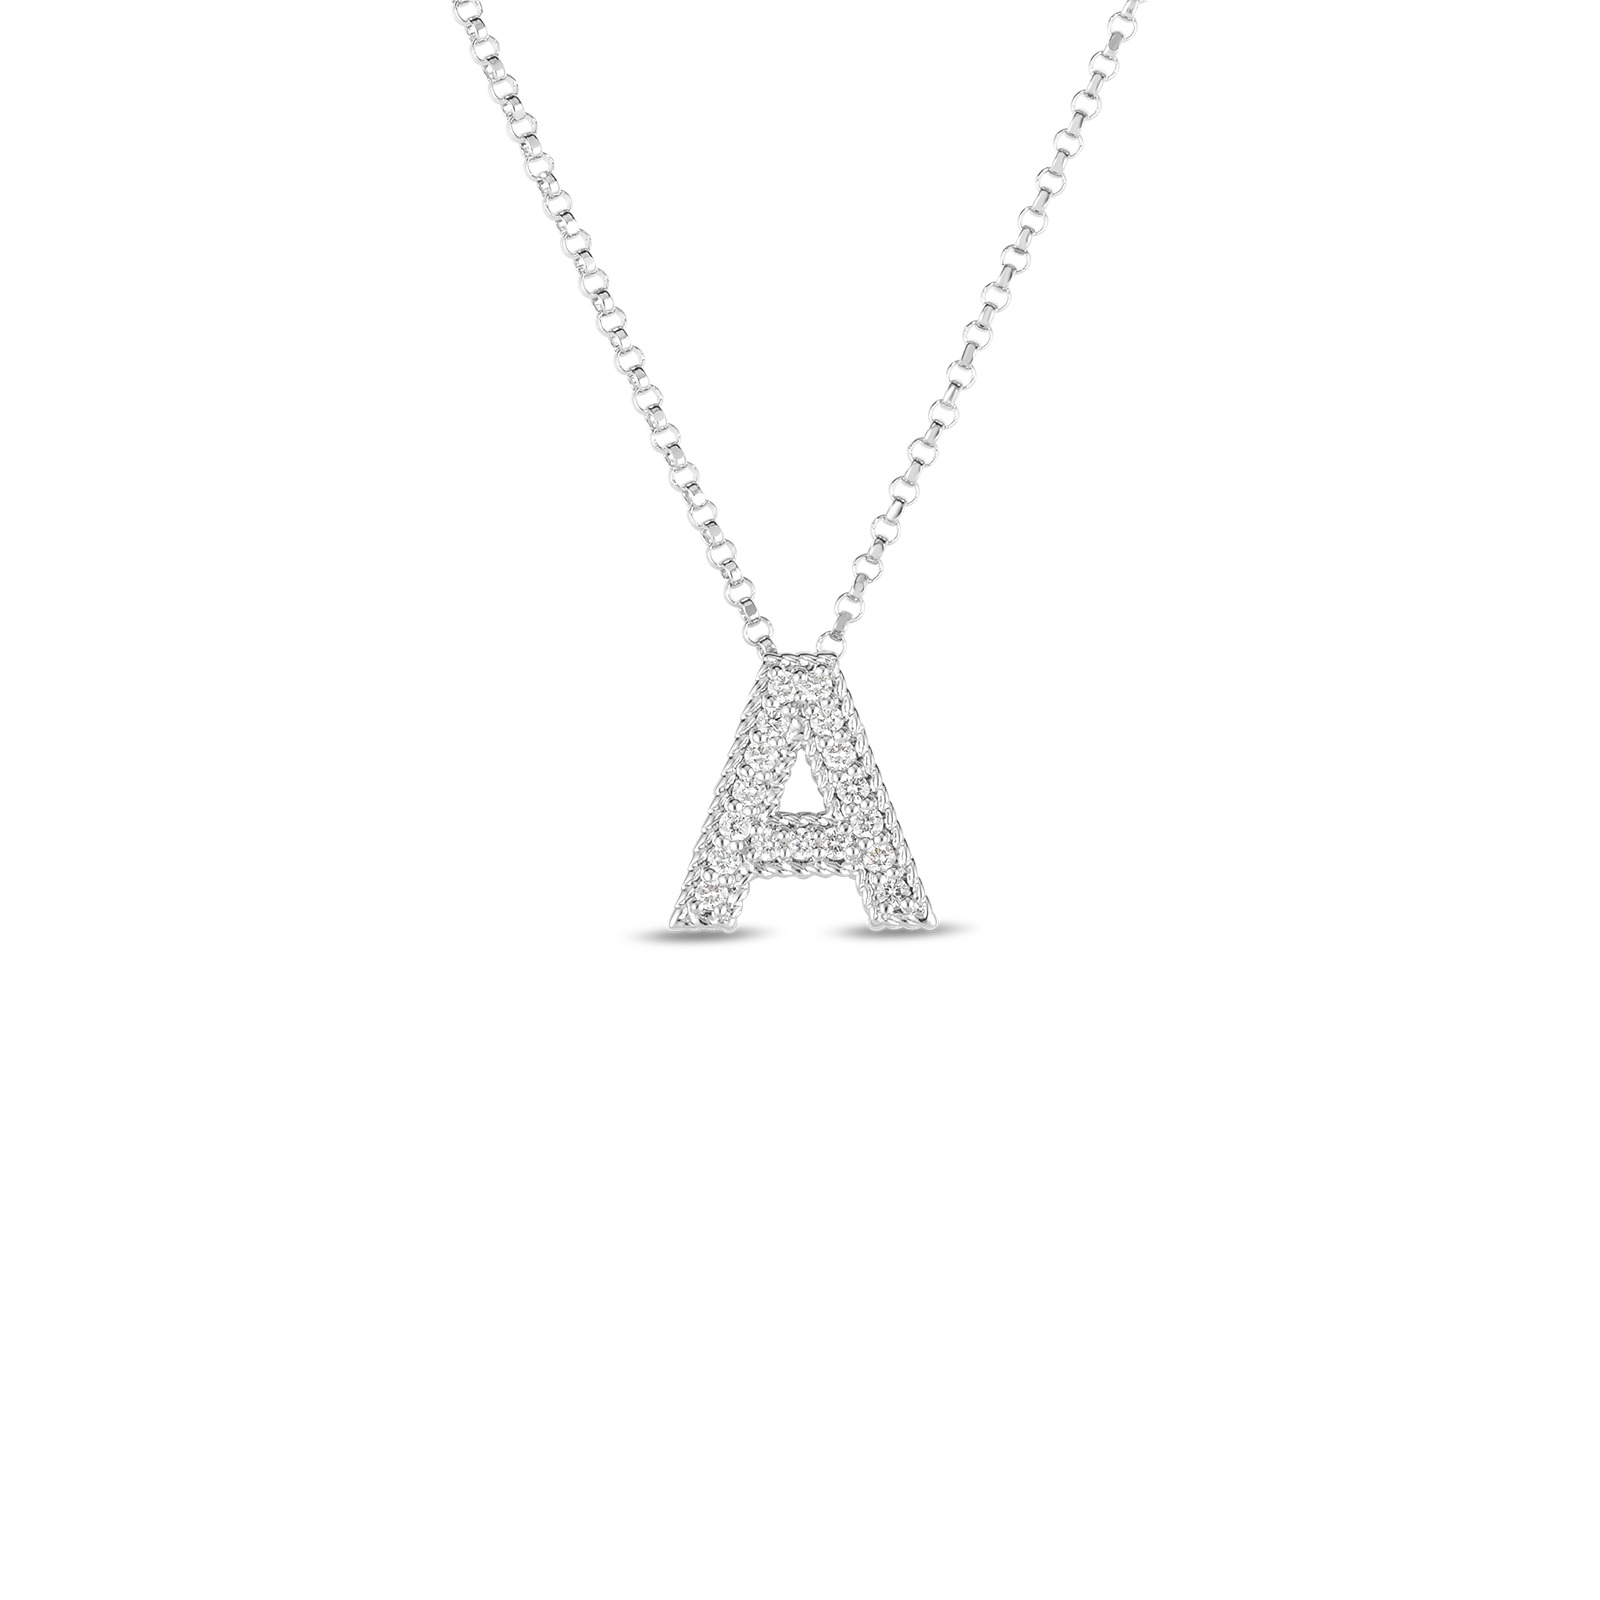 18k Gold & Diamond Princess Initial 'A' Pendant On Chain